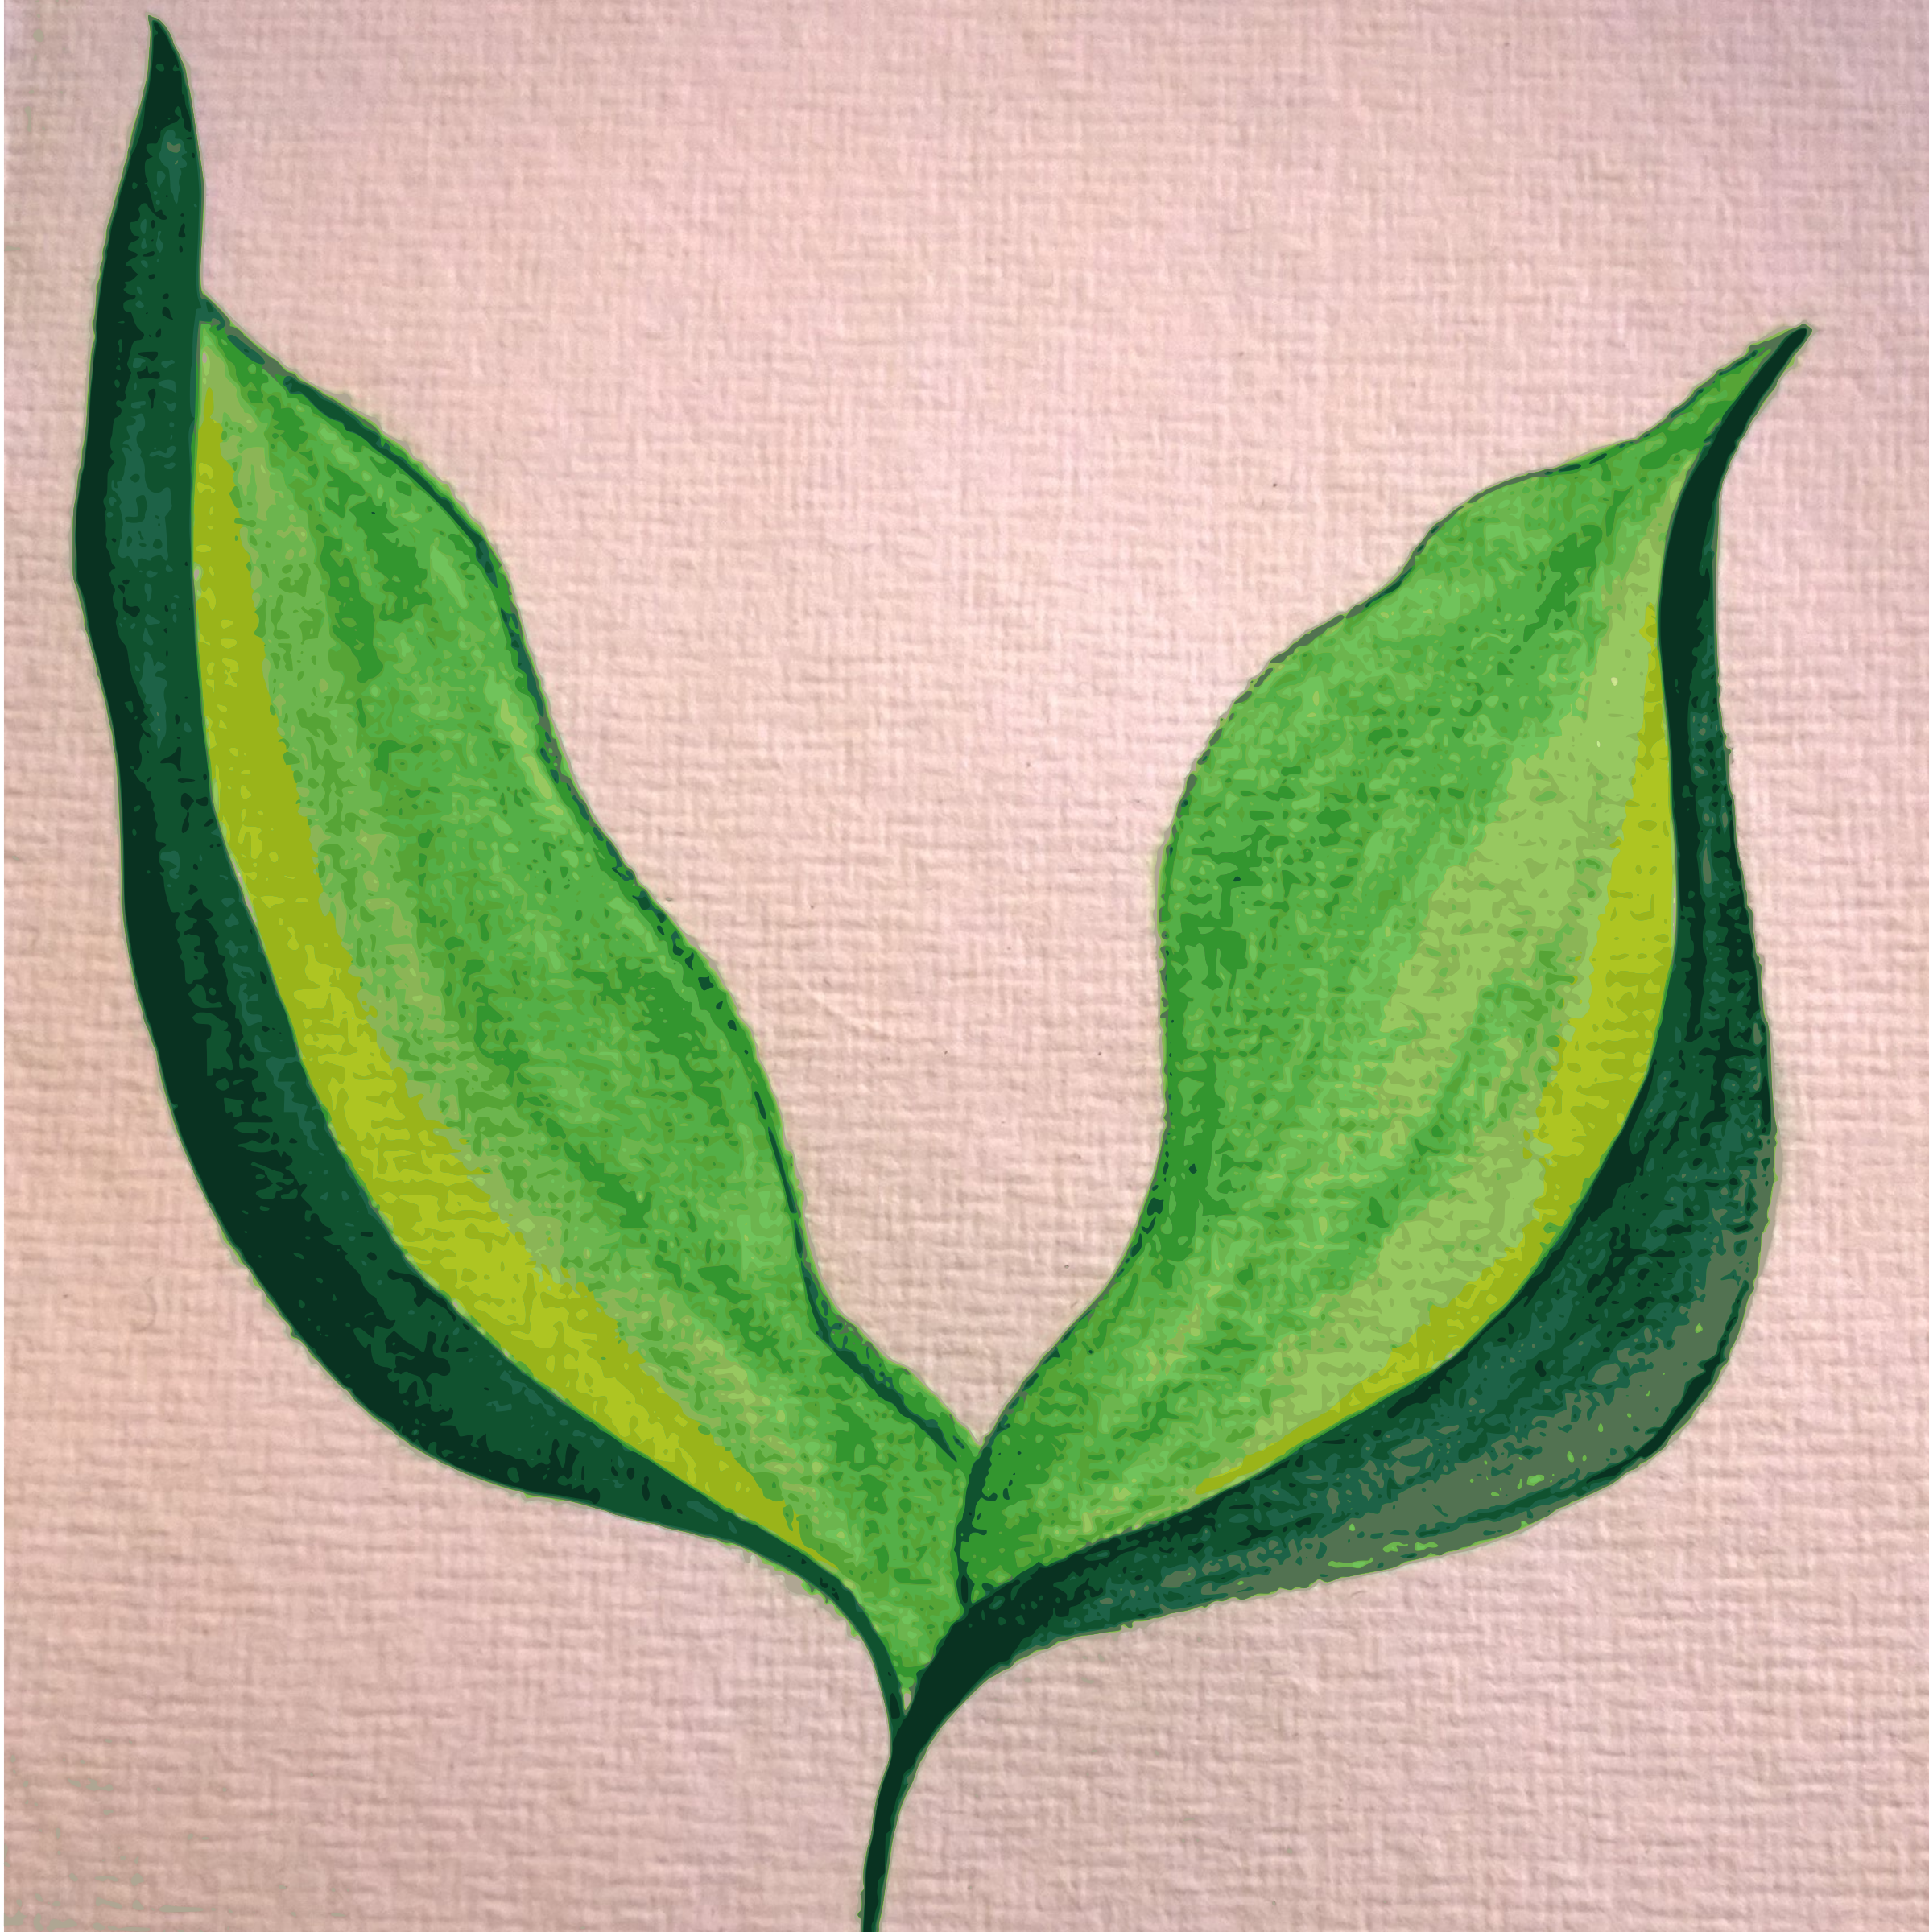 Painted Leaves on hand-made paper, traced. by oldifluff